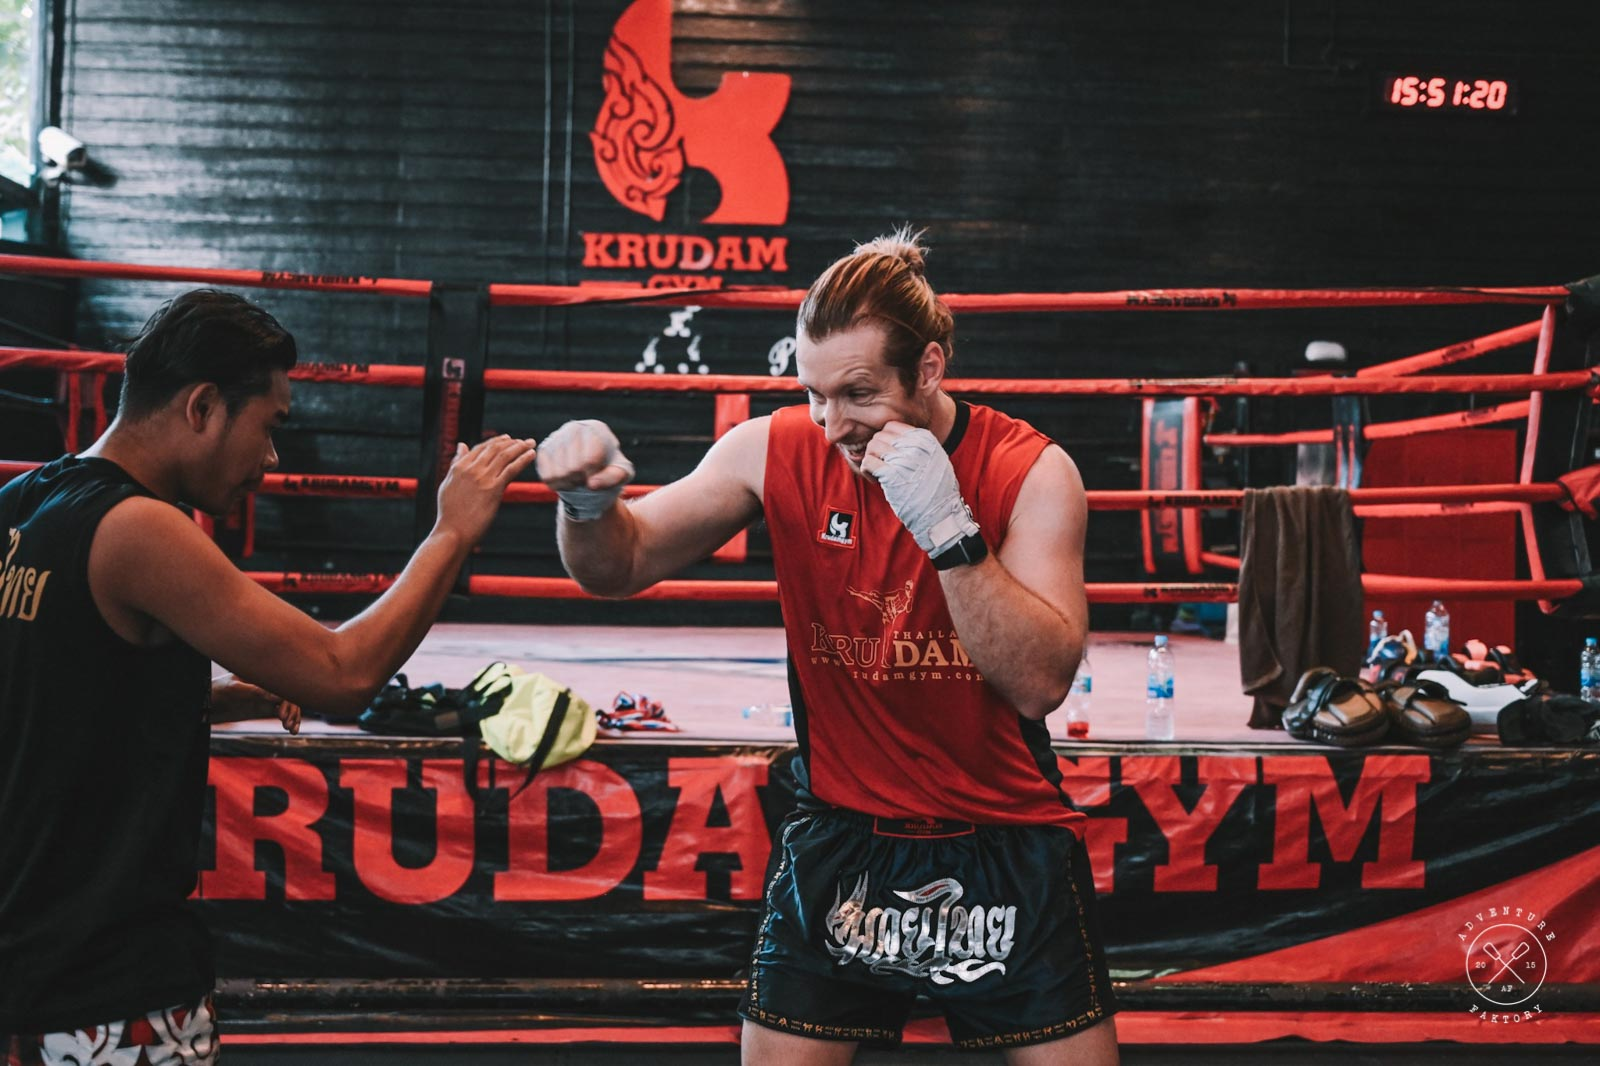 Krudam Training